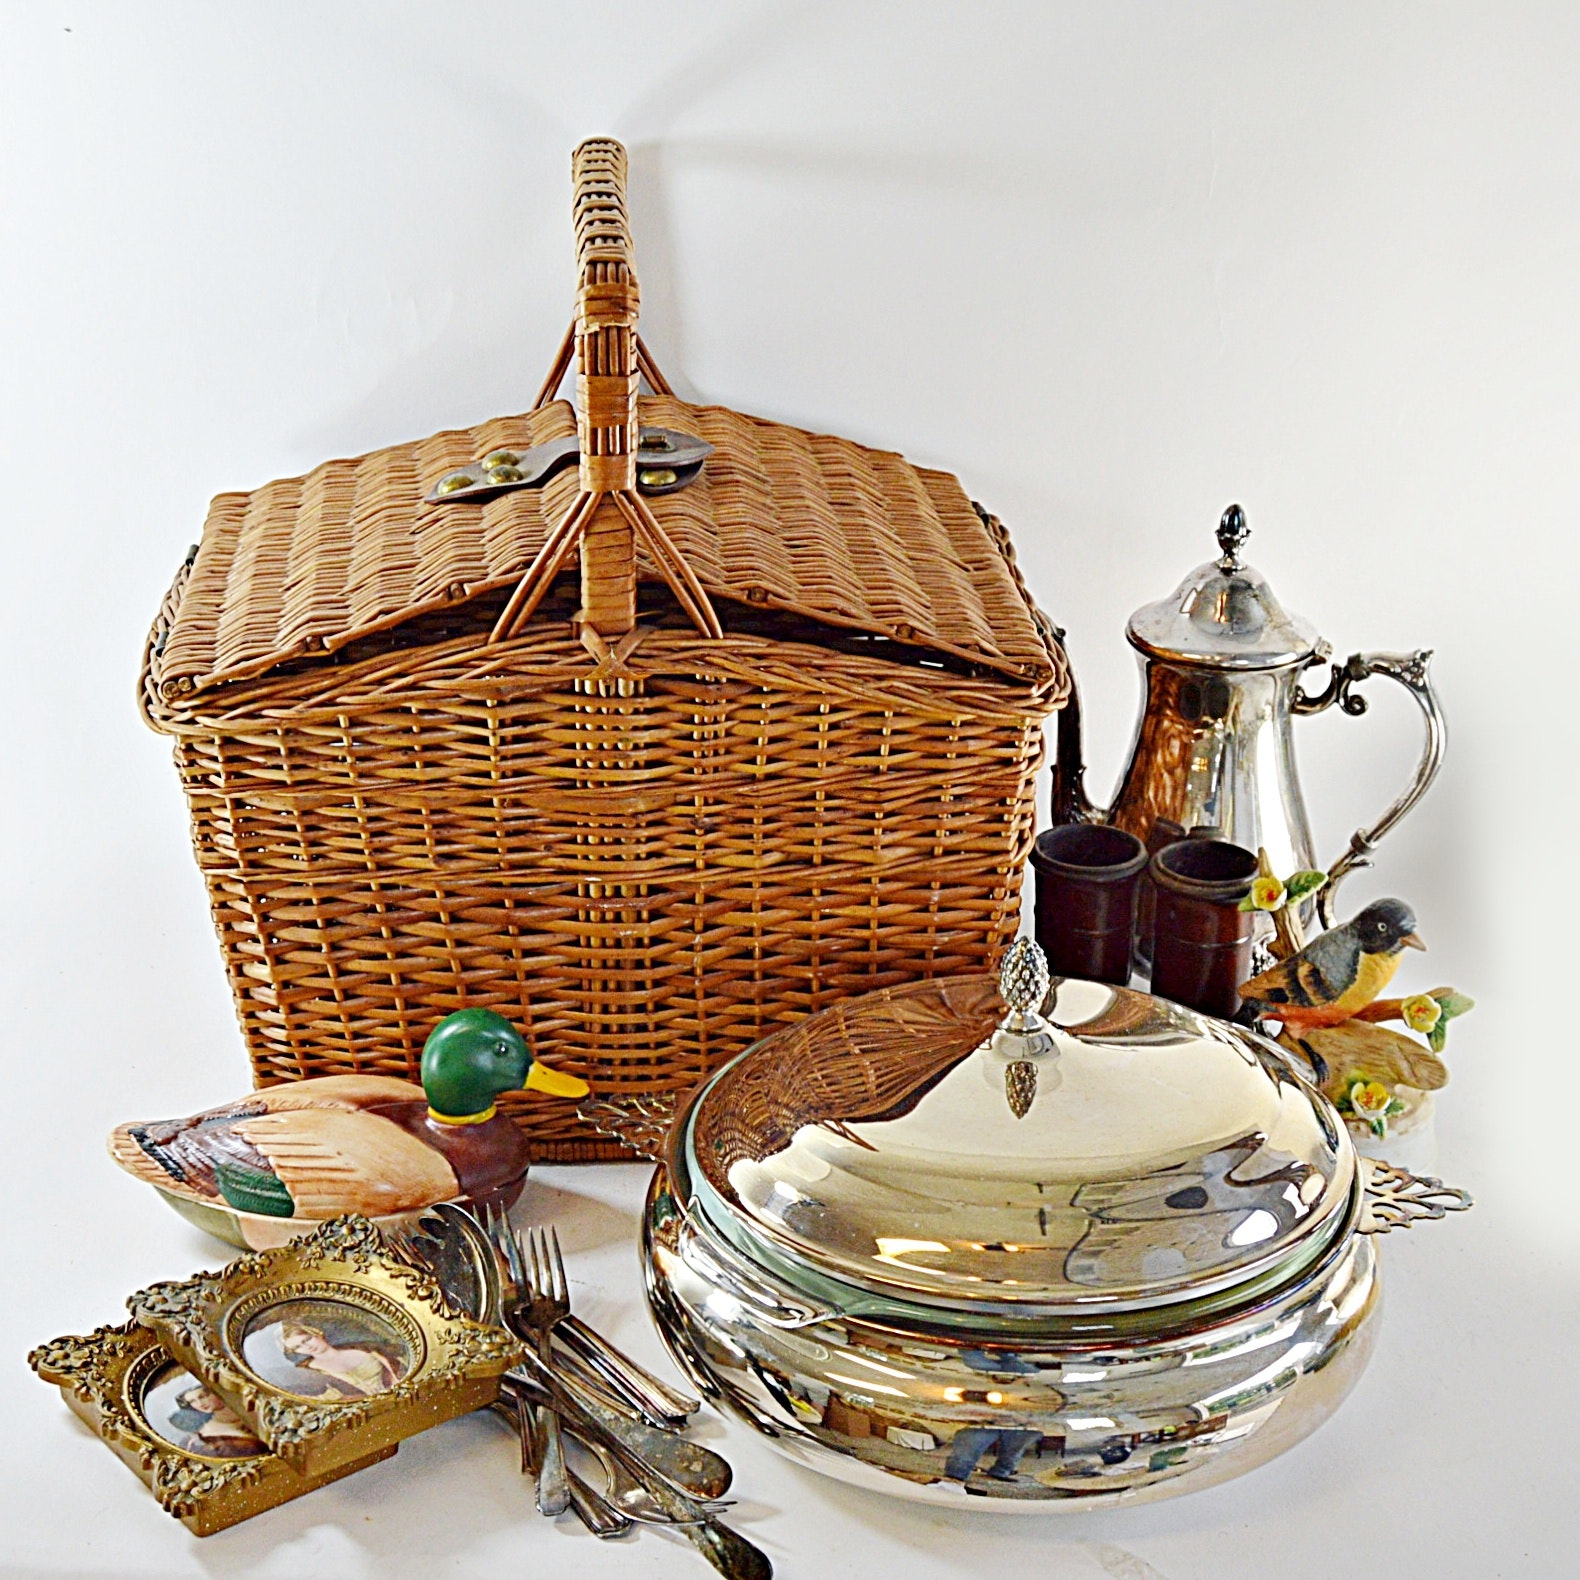 Silver Plate Serving Pieces, Collectibles and a Wicker Picnic Basket